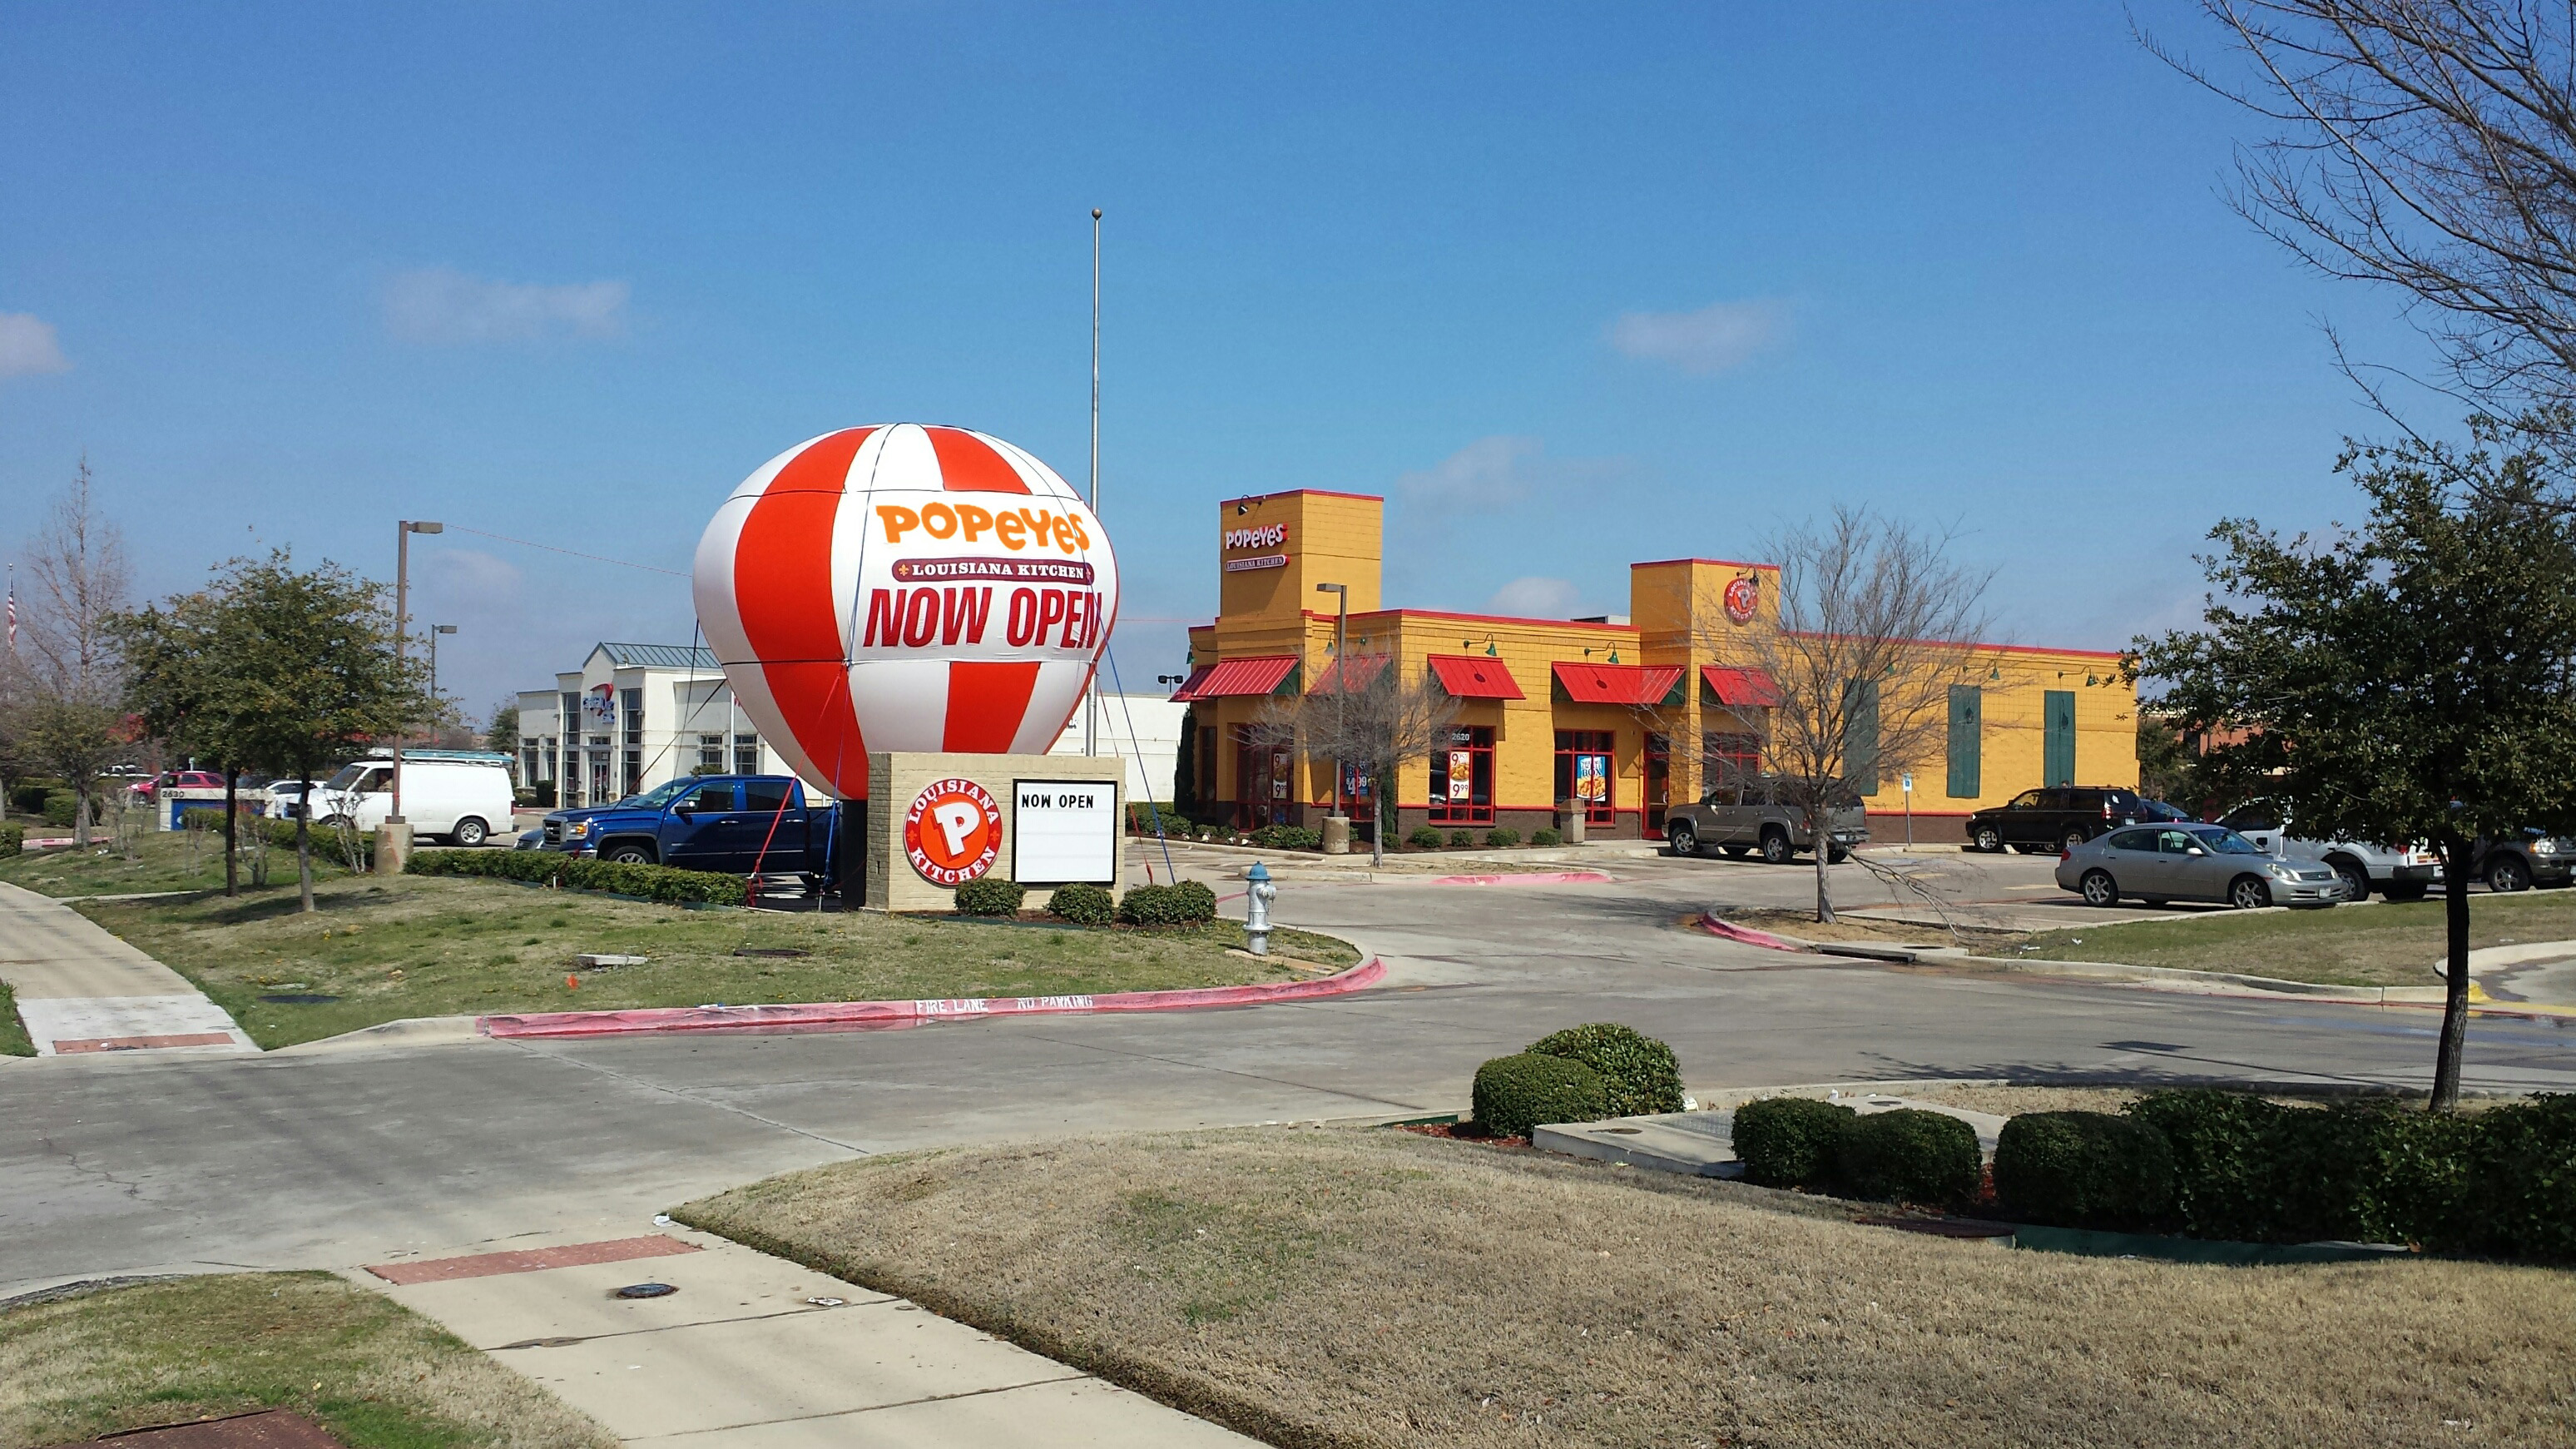 advertising-balloons-visible-advertisement-maryland